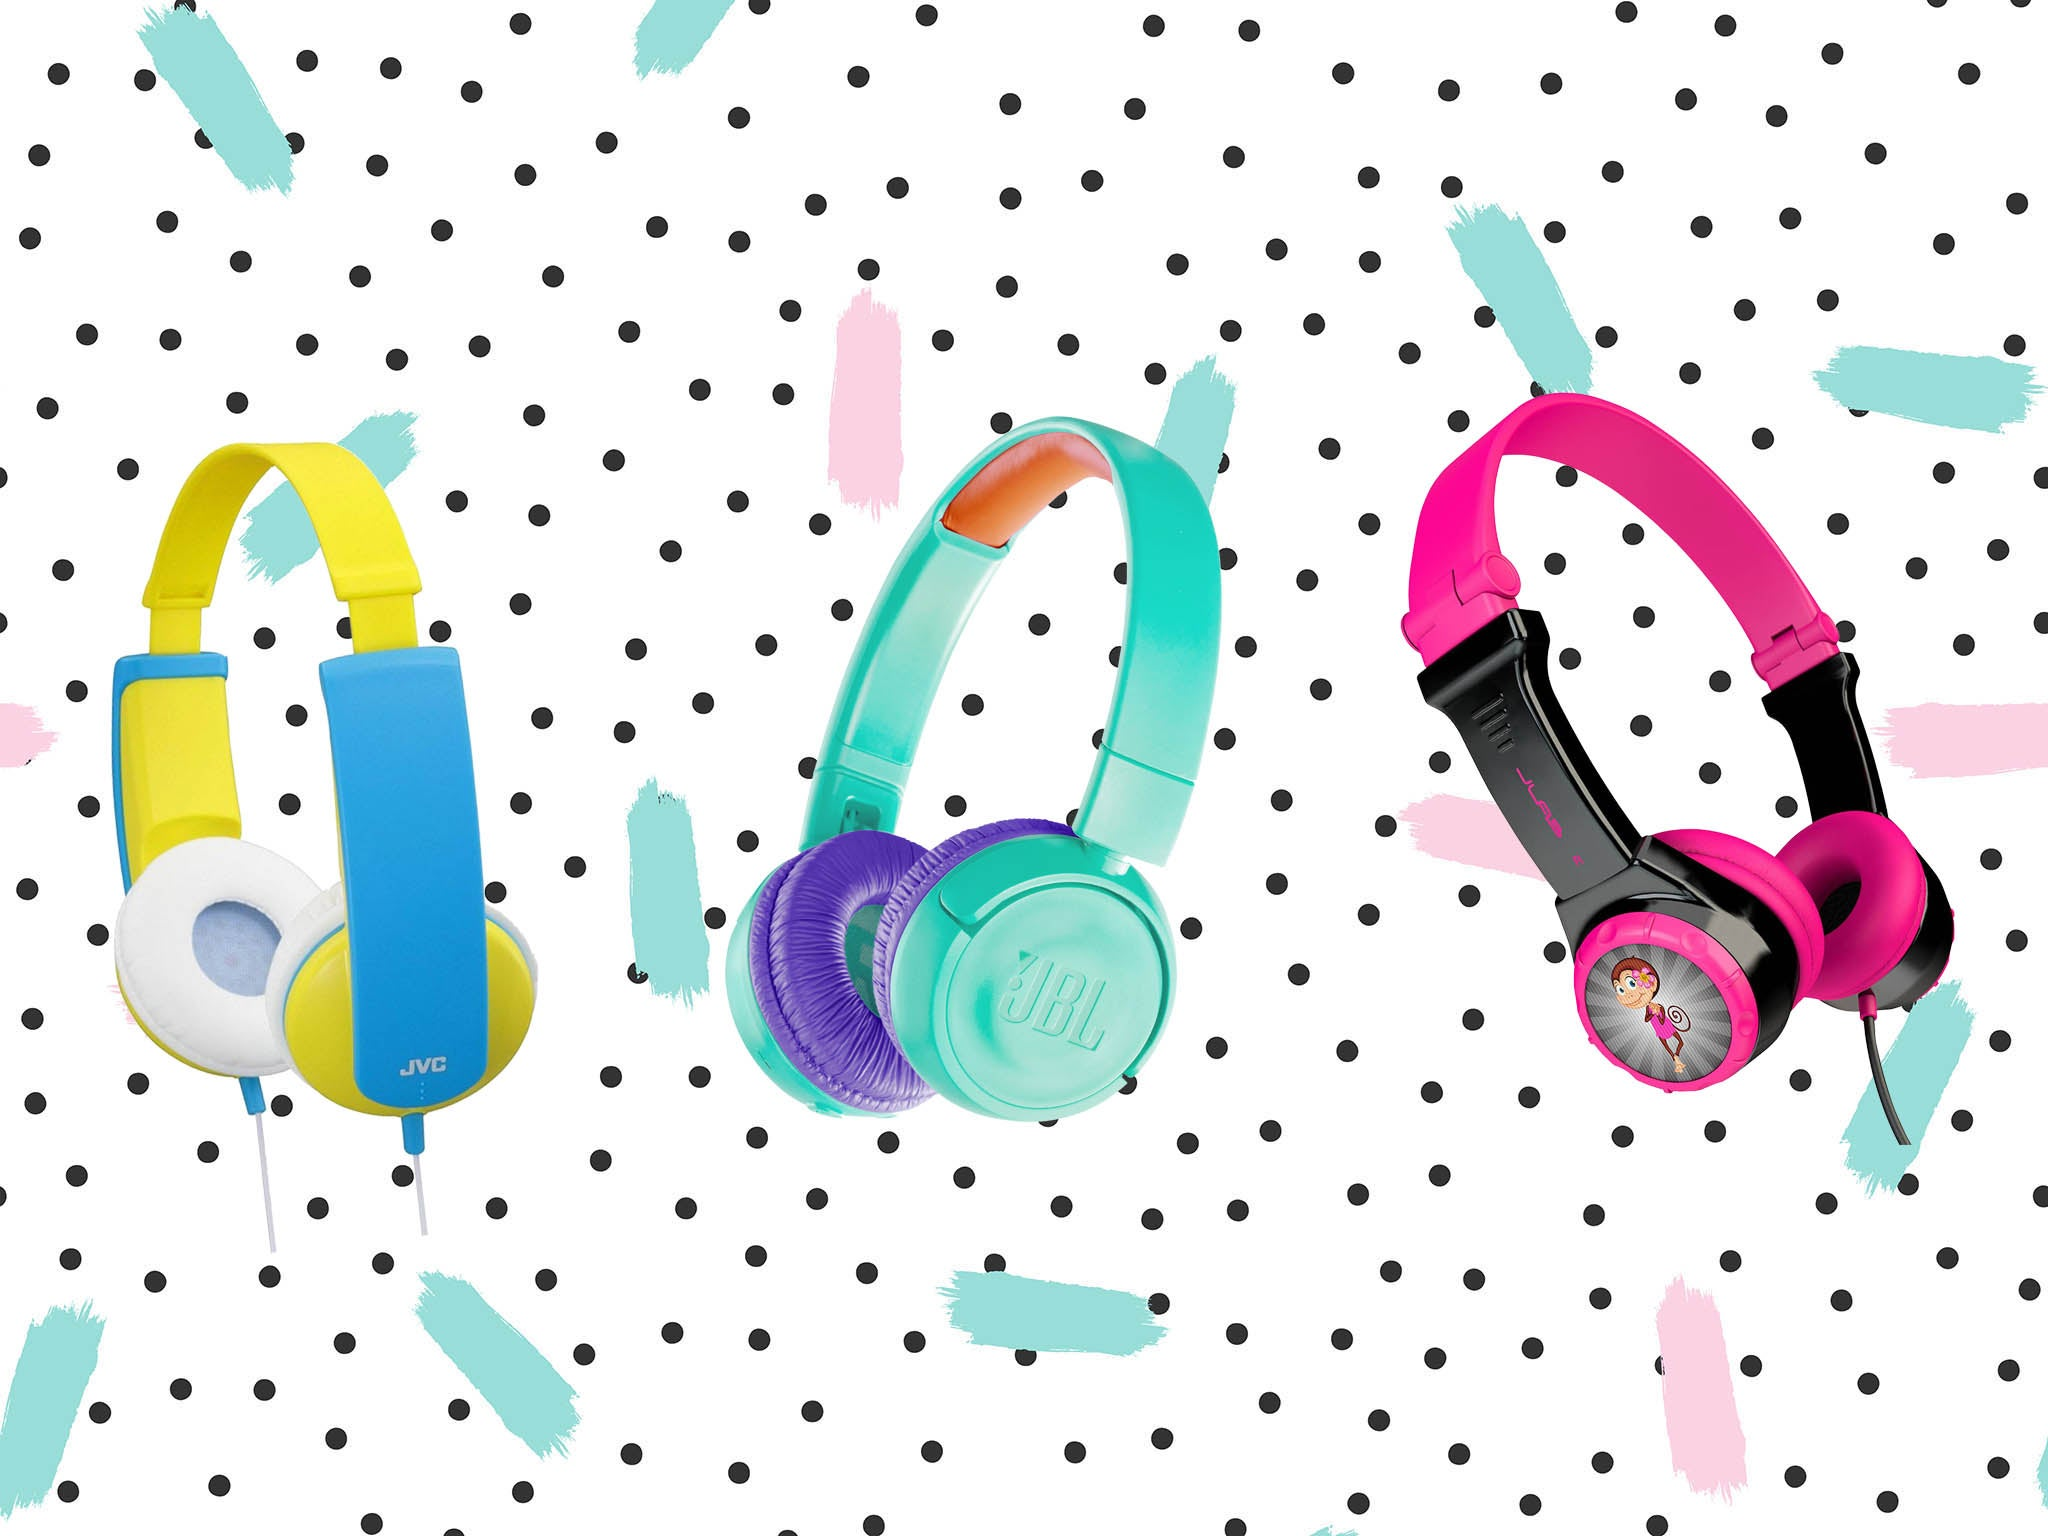 Best kids' headphones that are safe and fun for little ears